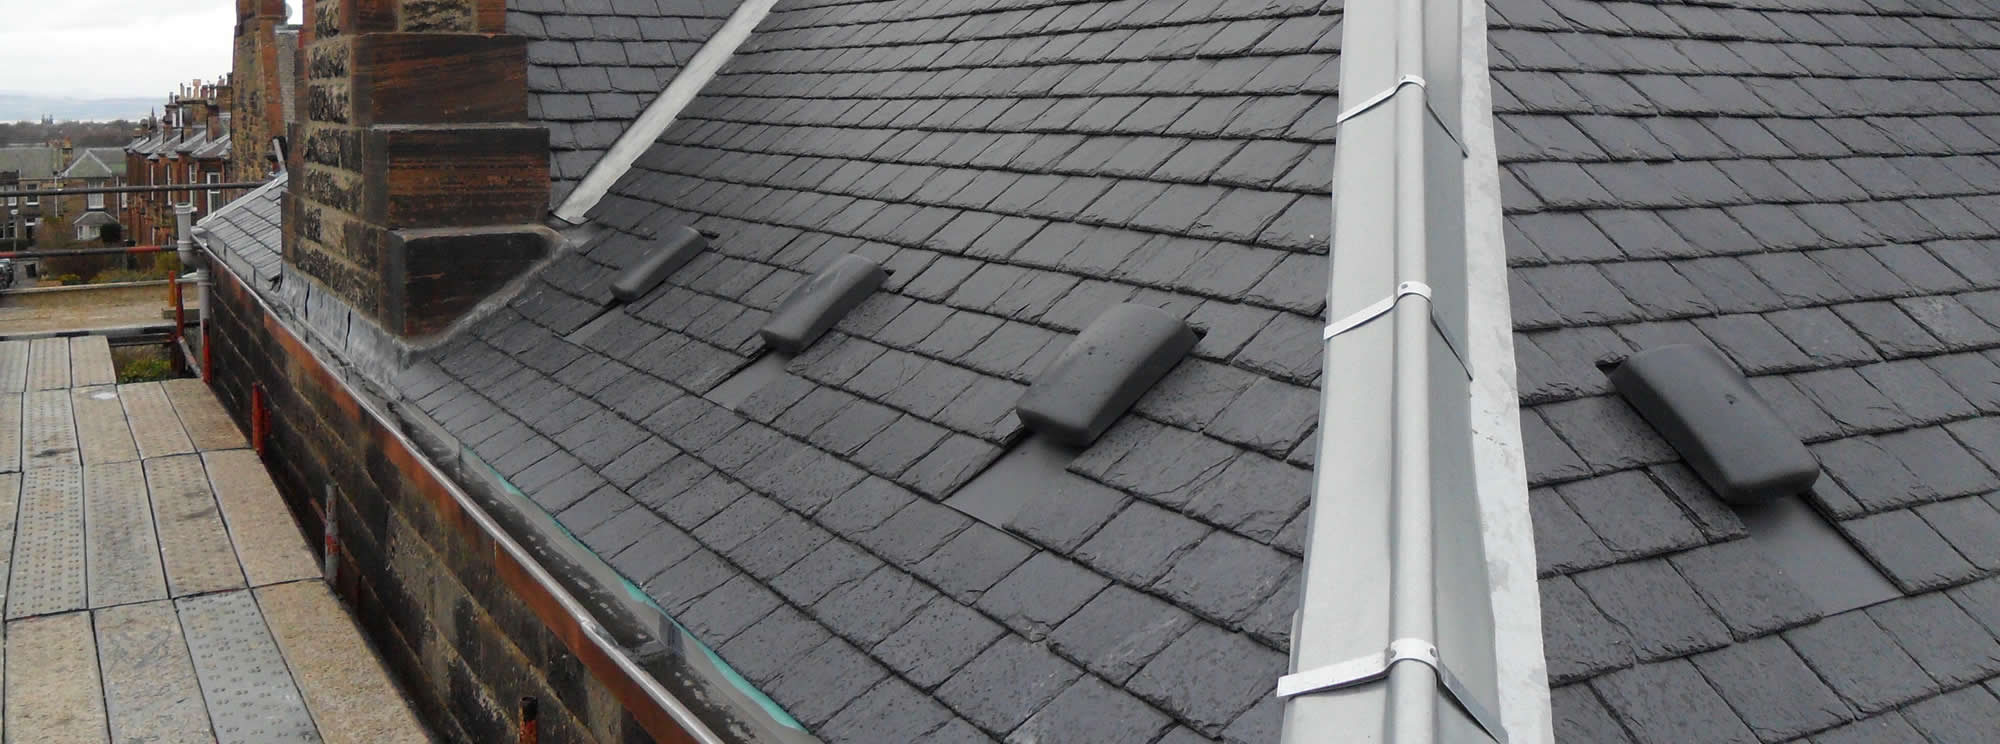 Roofing Contractor in Plymouth